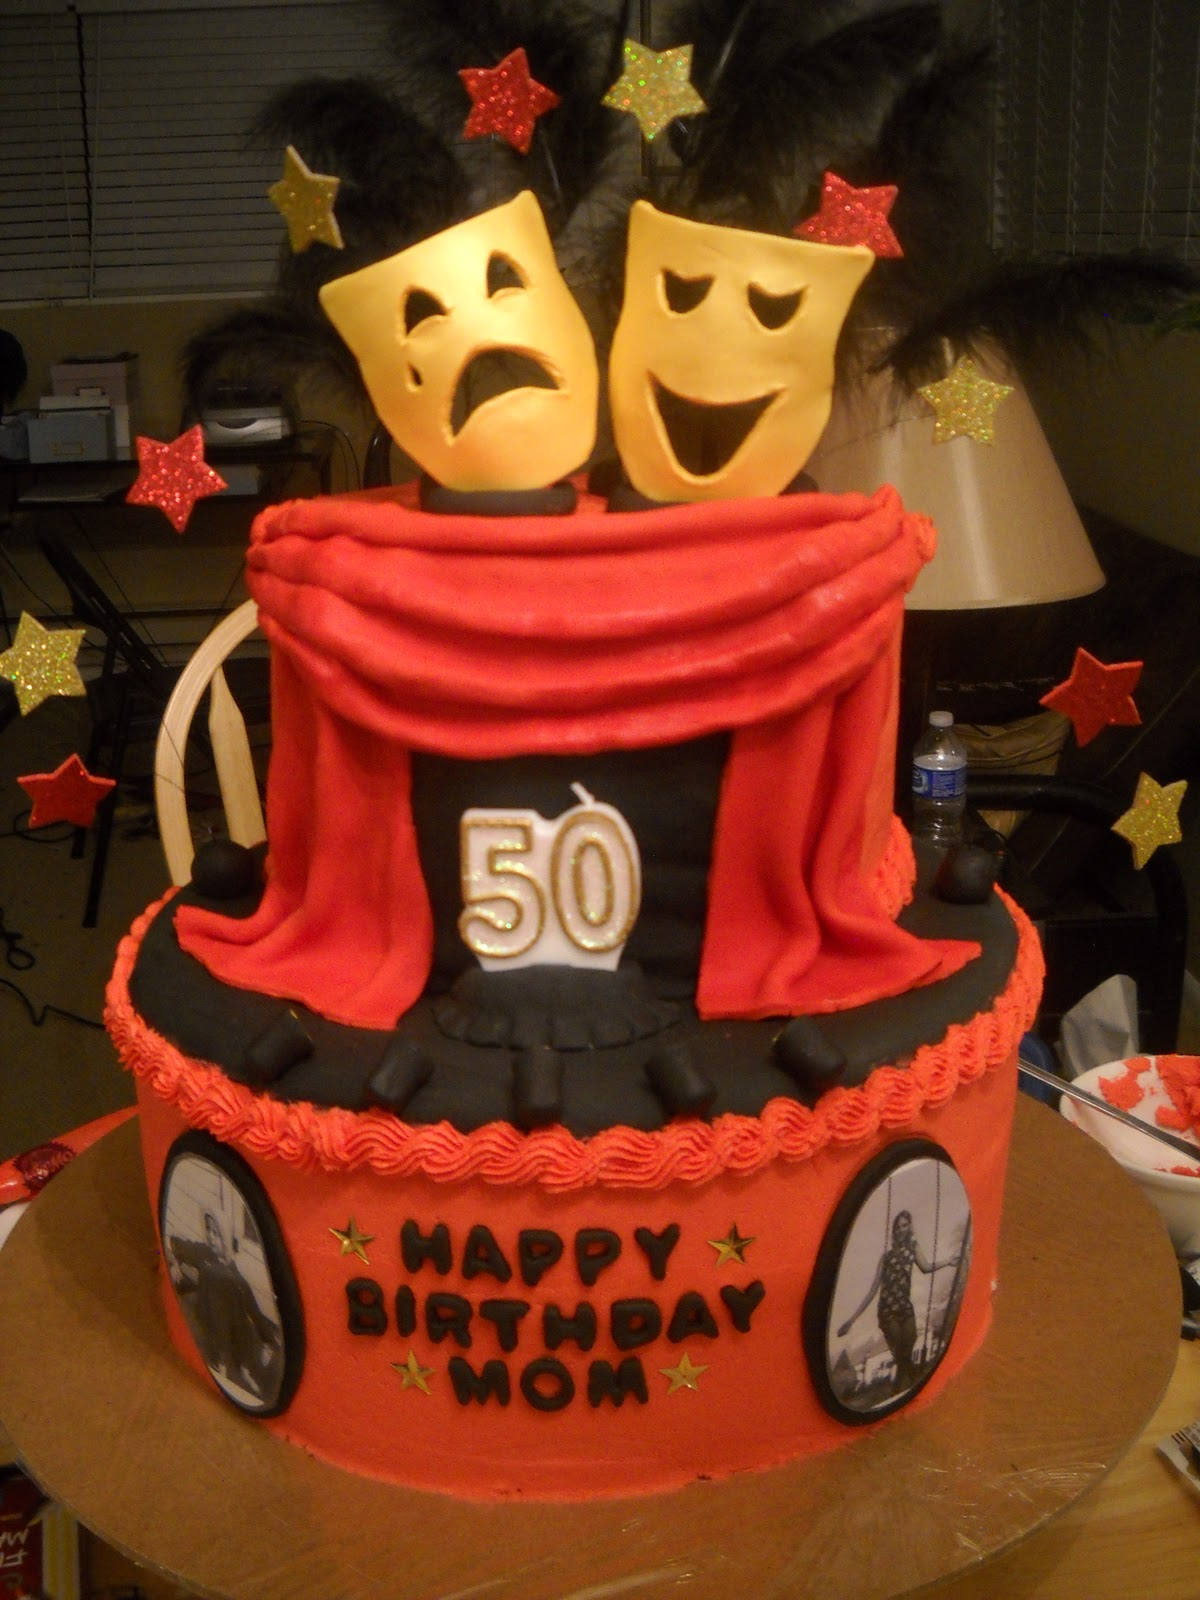 My Friend Tia Wanted To Surprise Her Mother With A Special 50th Birthday Cake Drew Up The Design And Helped Me Make This